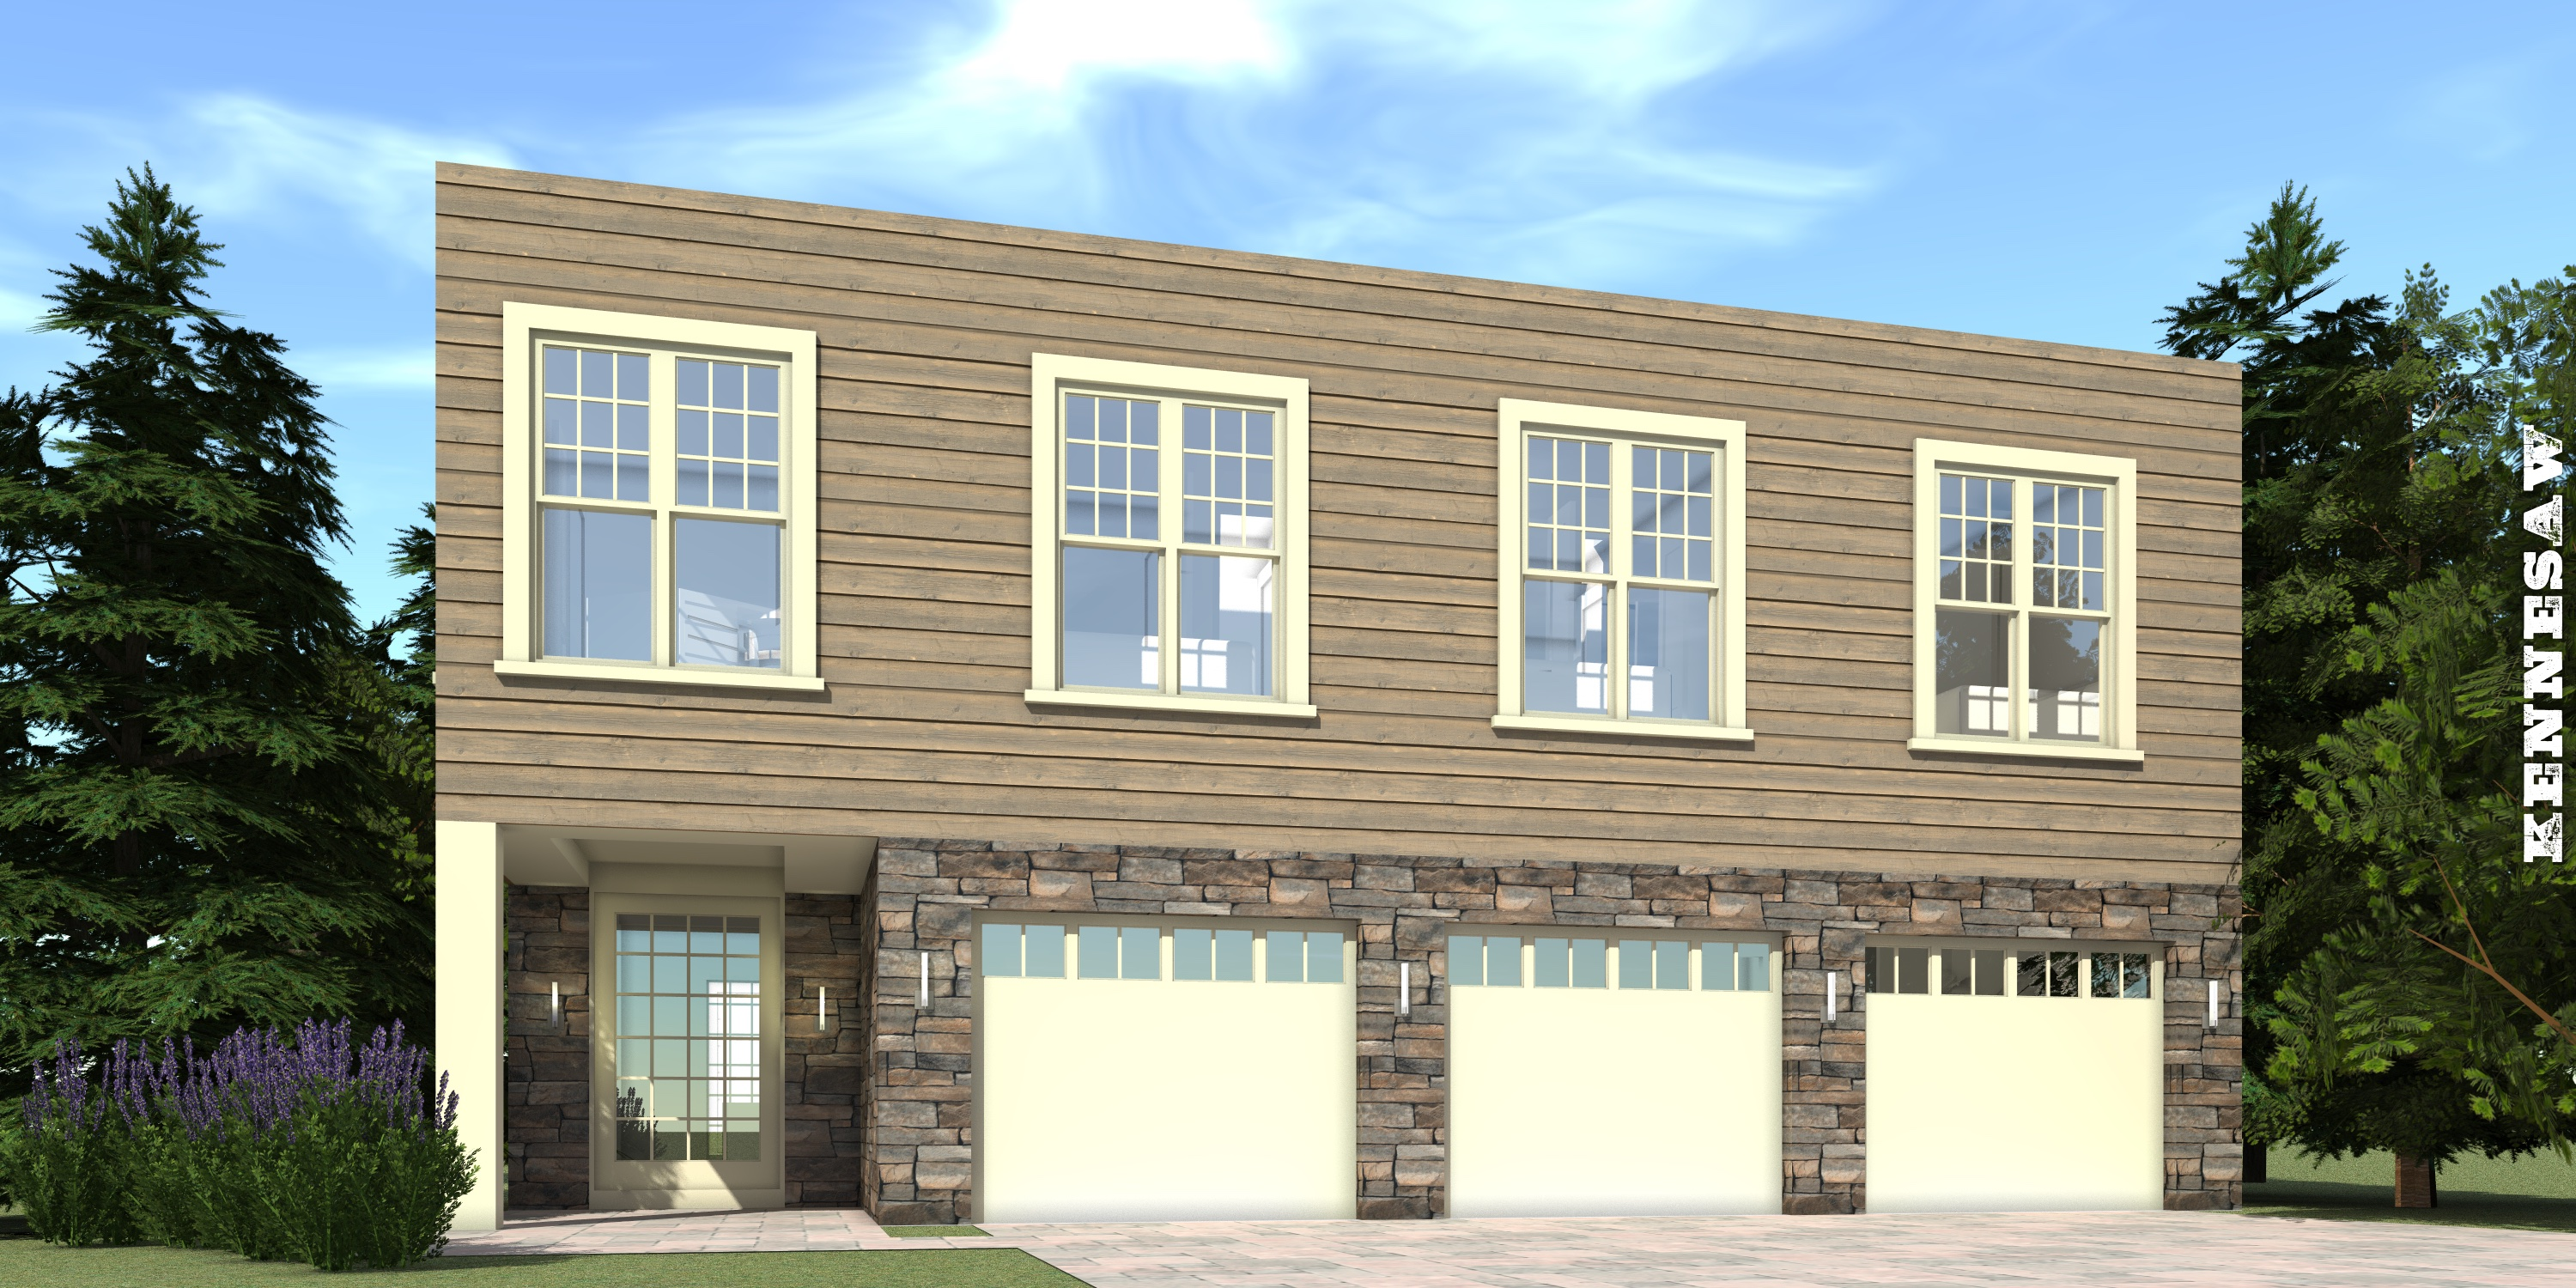 5 Bedroom House for Small Lot. Kennesaw by Tyree House Plans.